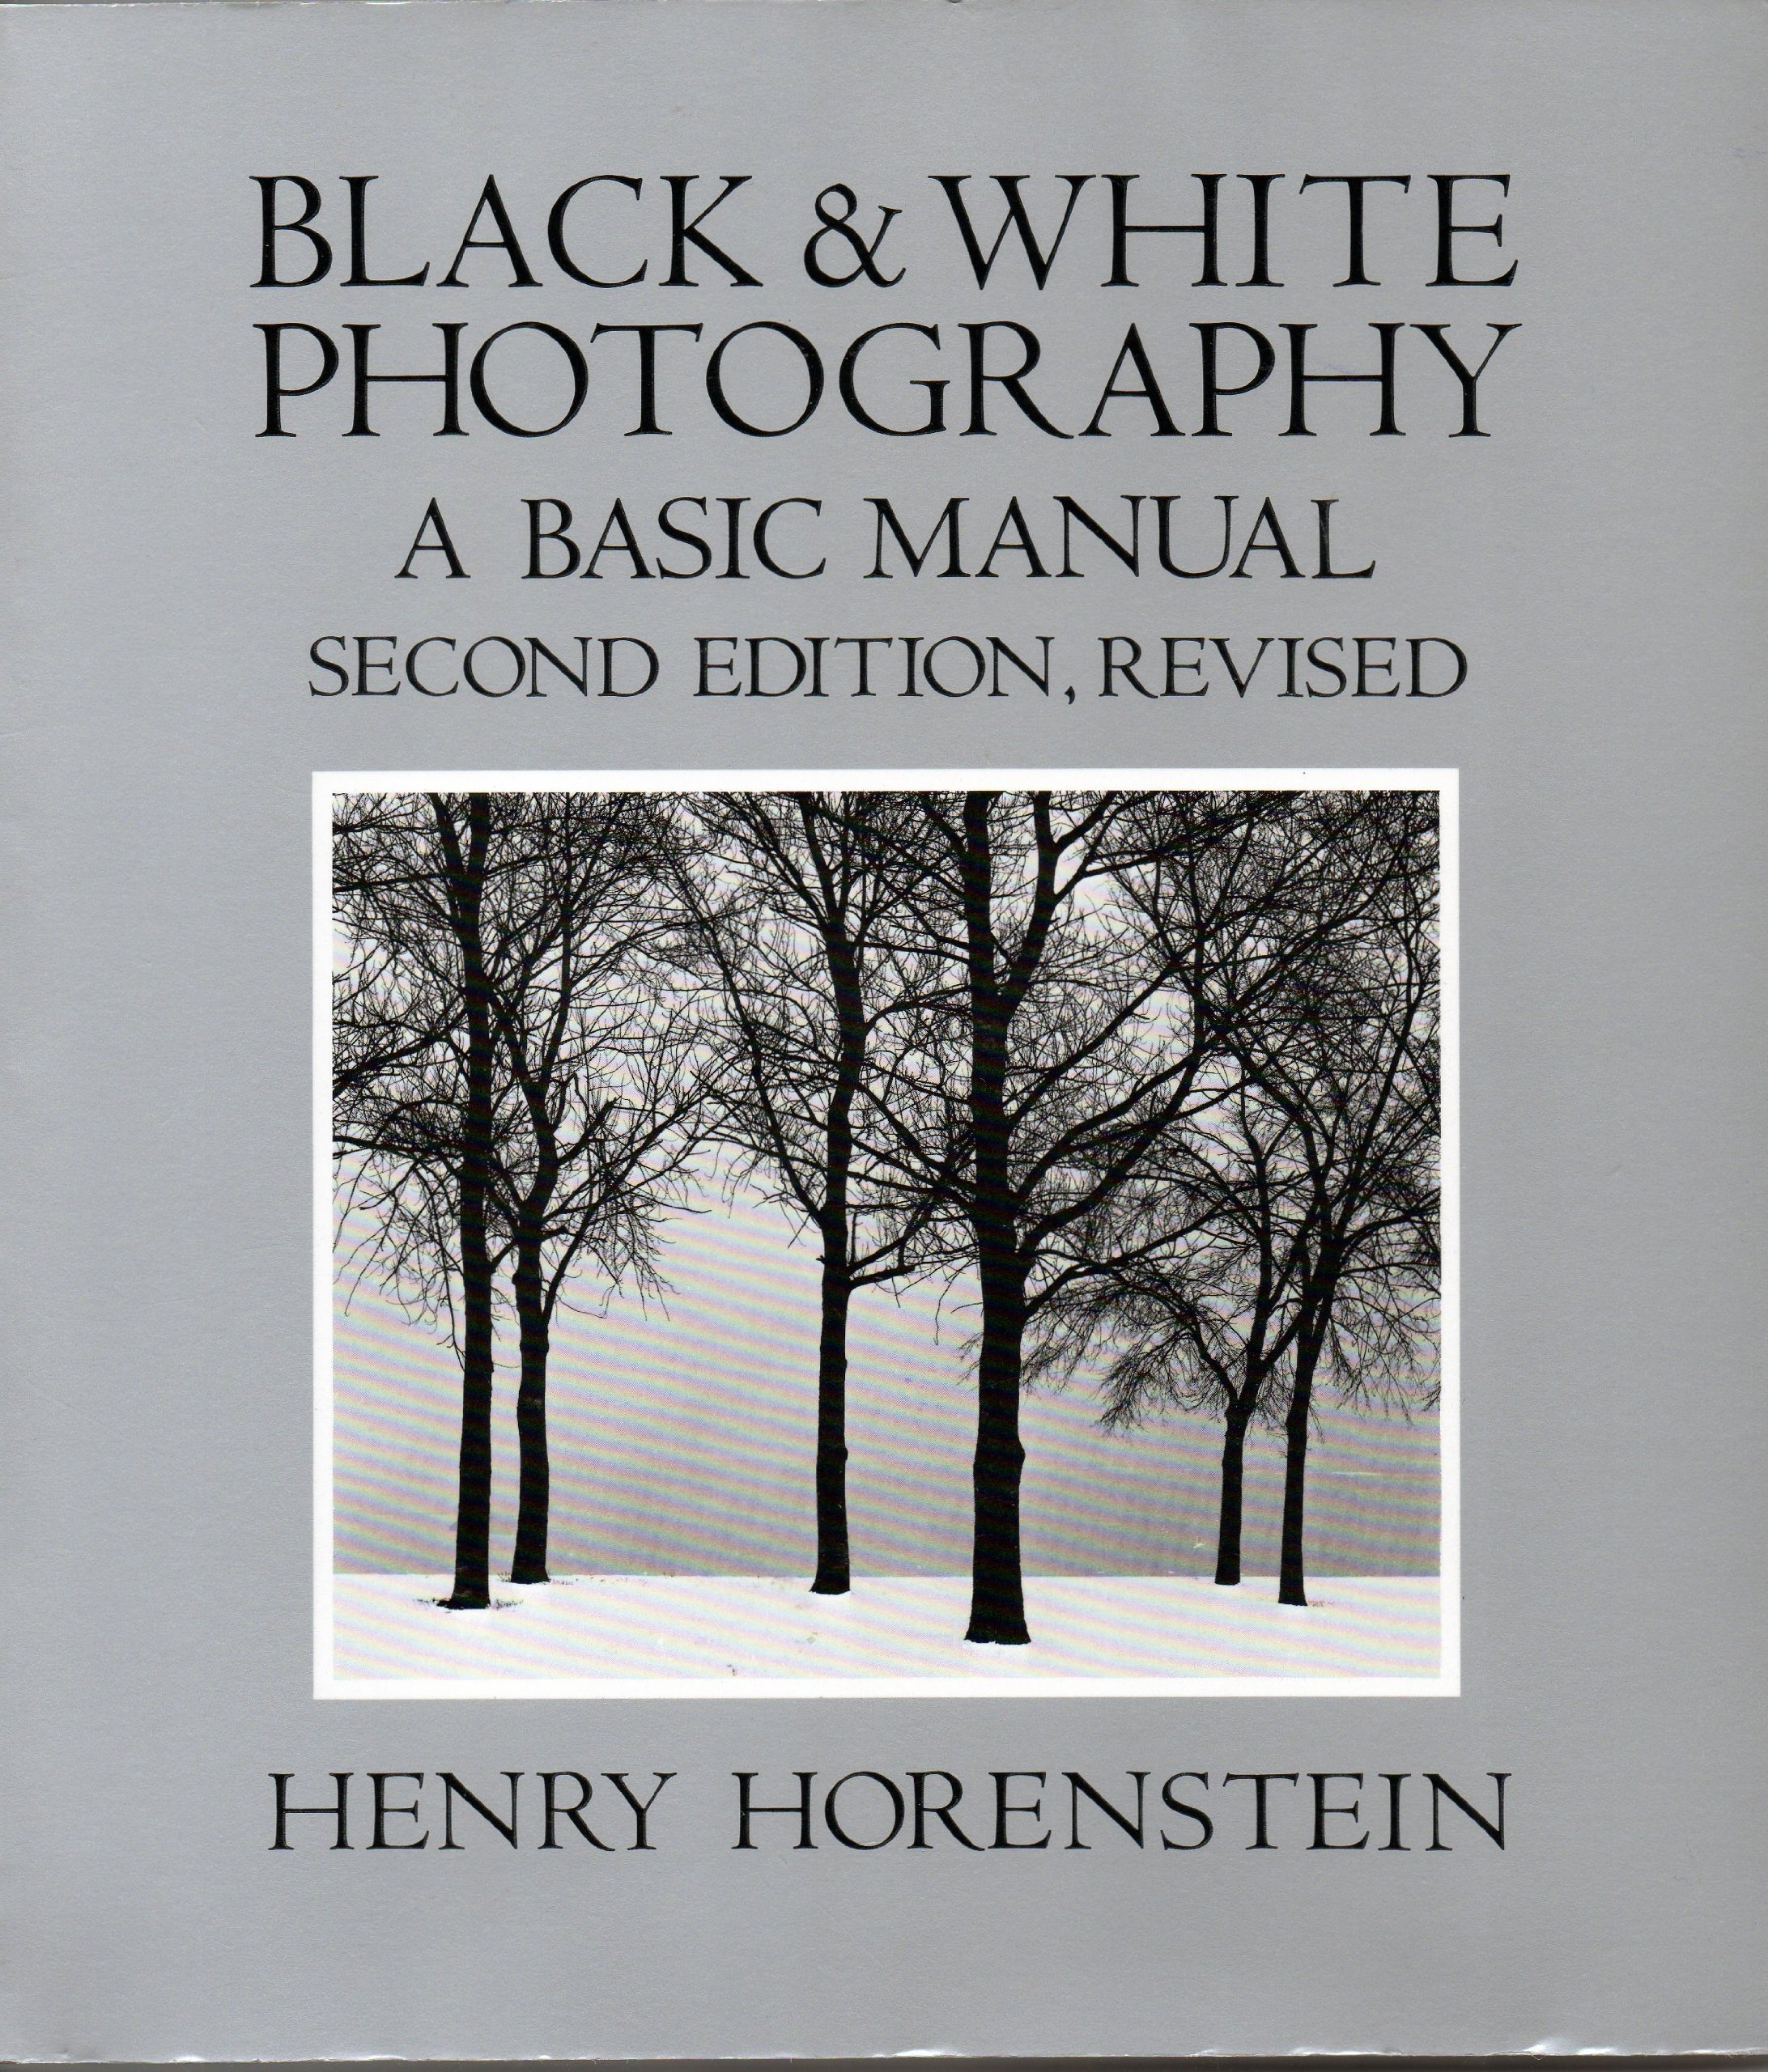 Black and white photography a basic manual second edition revised paperback 1983 by henry horenstein